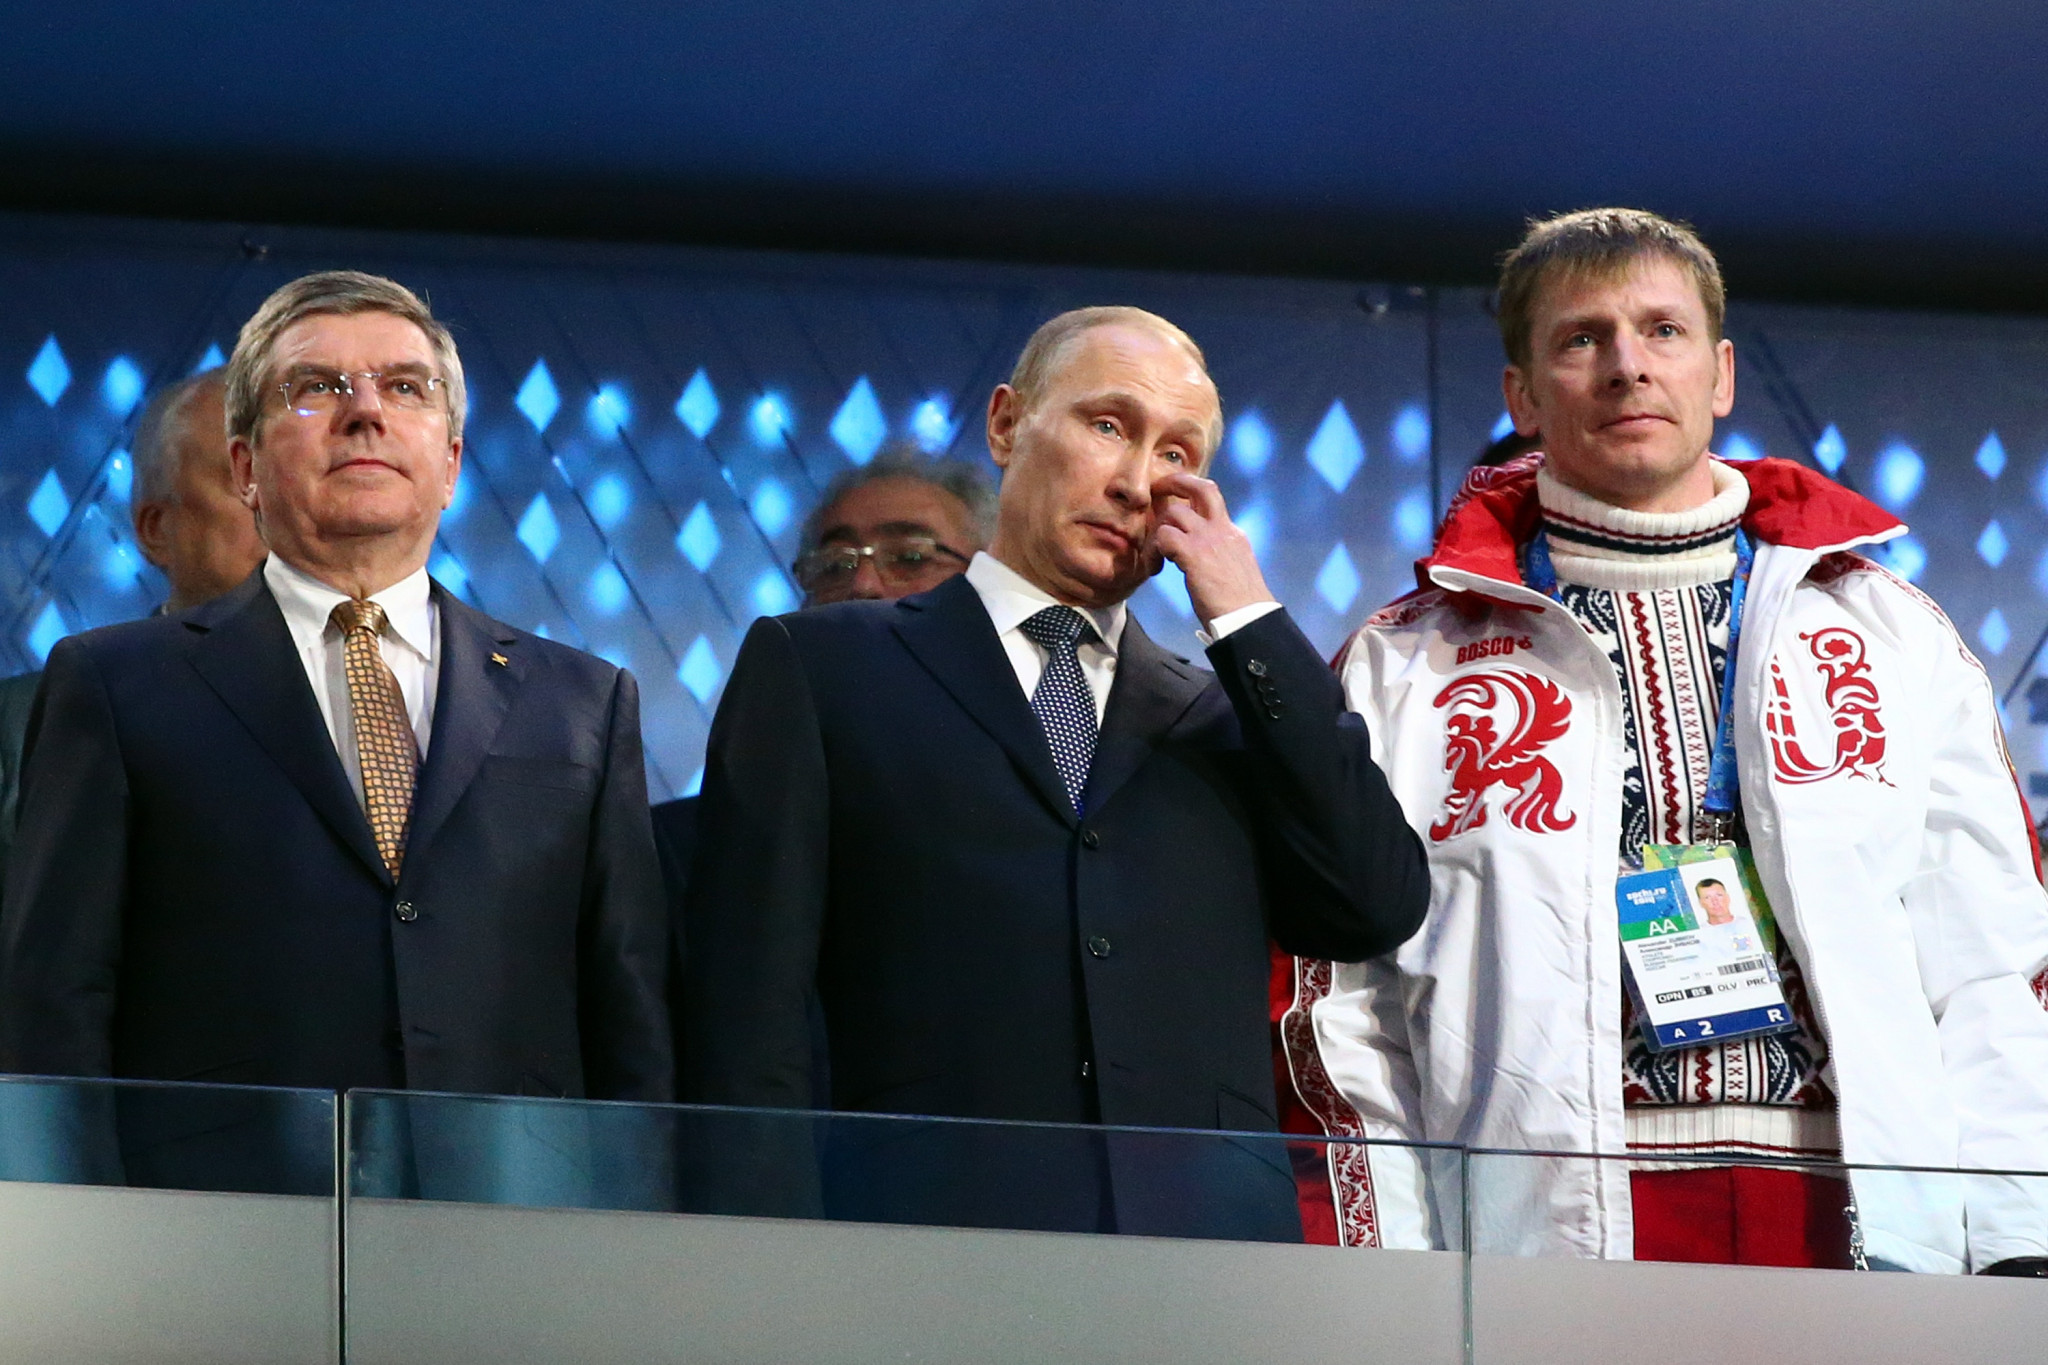 RBSF President Alexander Zubkov, right, is among the athletes to have been sanctioned by the IOC for doping at Sochi 2014, a decision which saw him stripped of two Olympic gold medals ©Getty Images